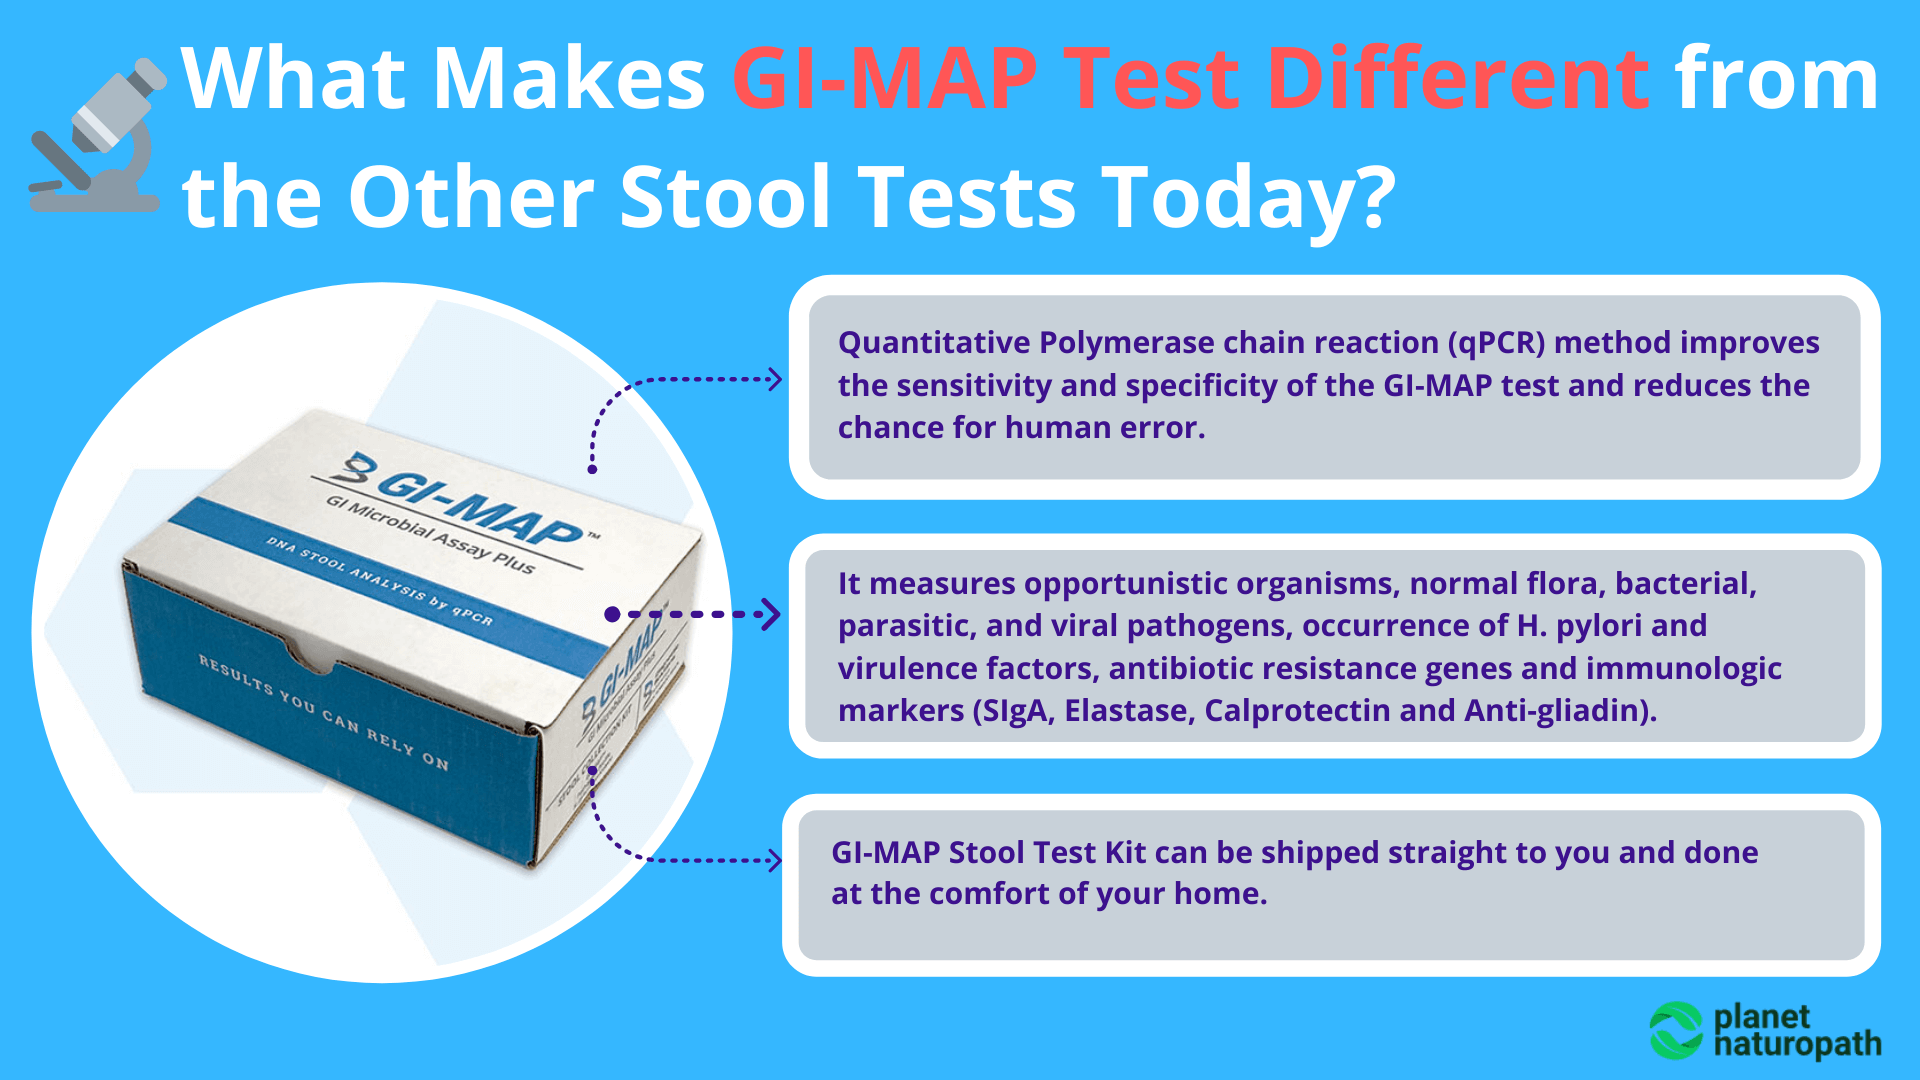 What-Makes-GI-MAP-Test-Different-from-the-Other-Stool-Tests-Today